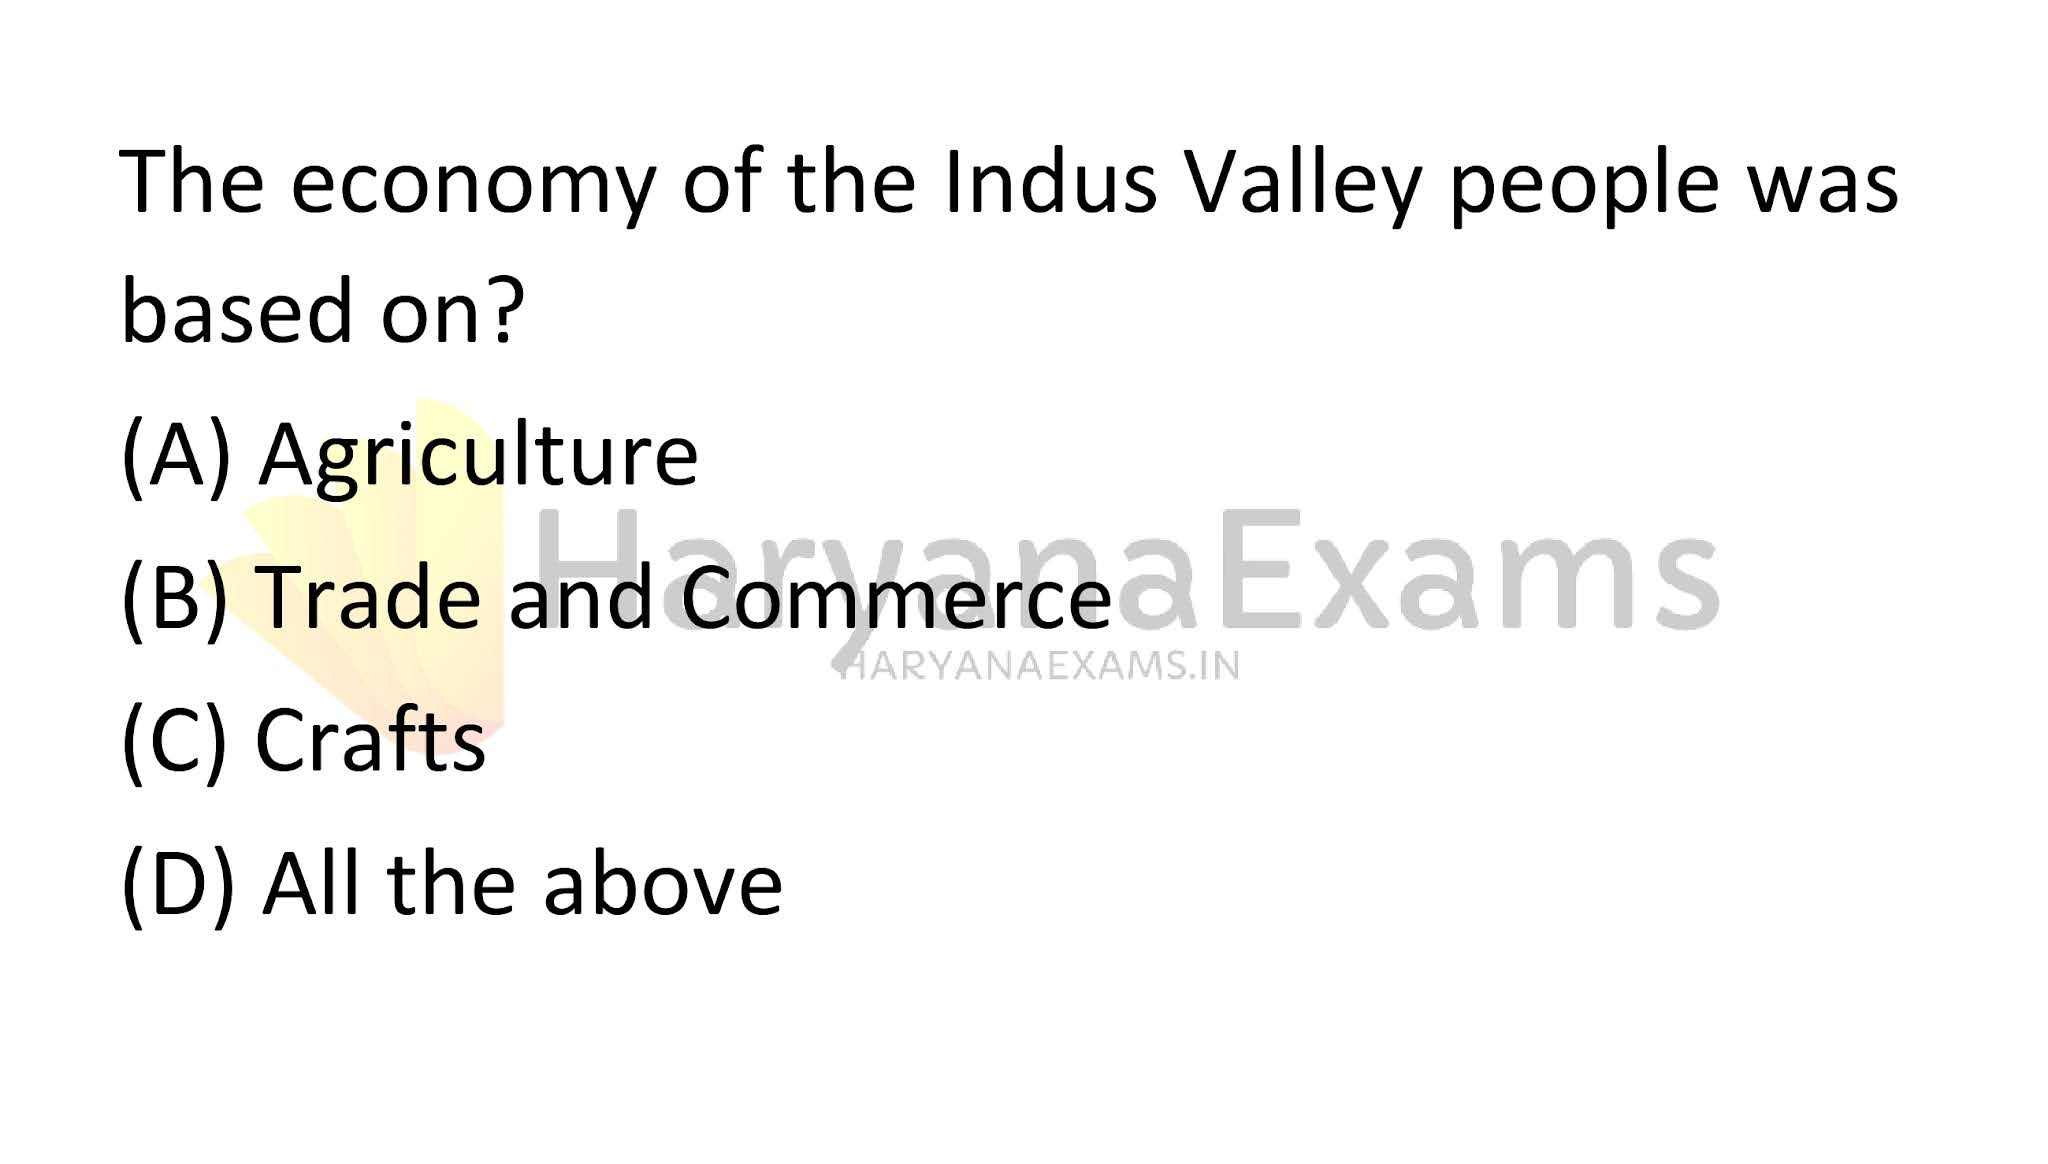 The economy of the Indus Valley people was based on?